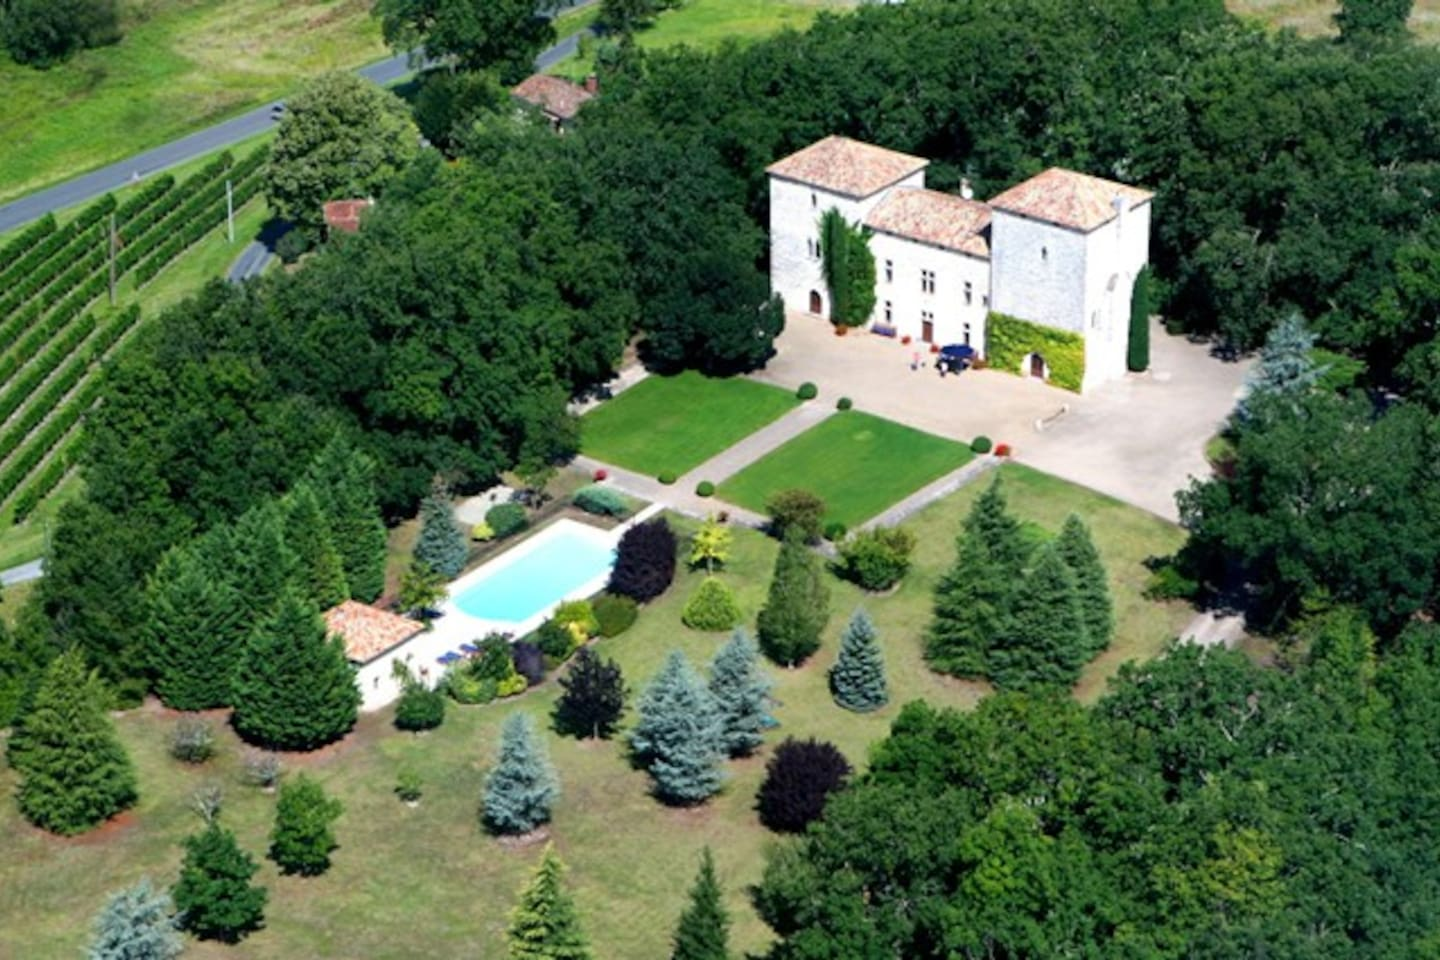 Aerial view of chateau, pool and park